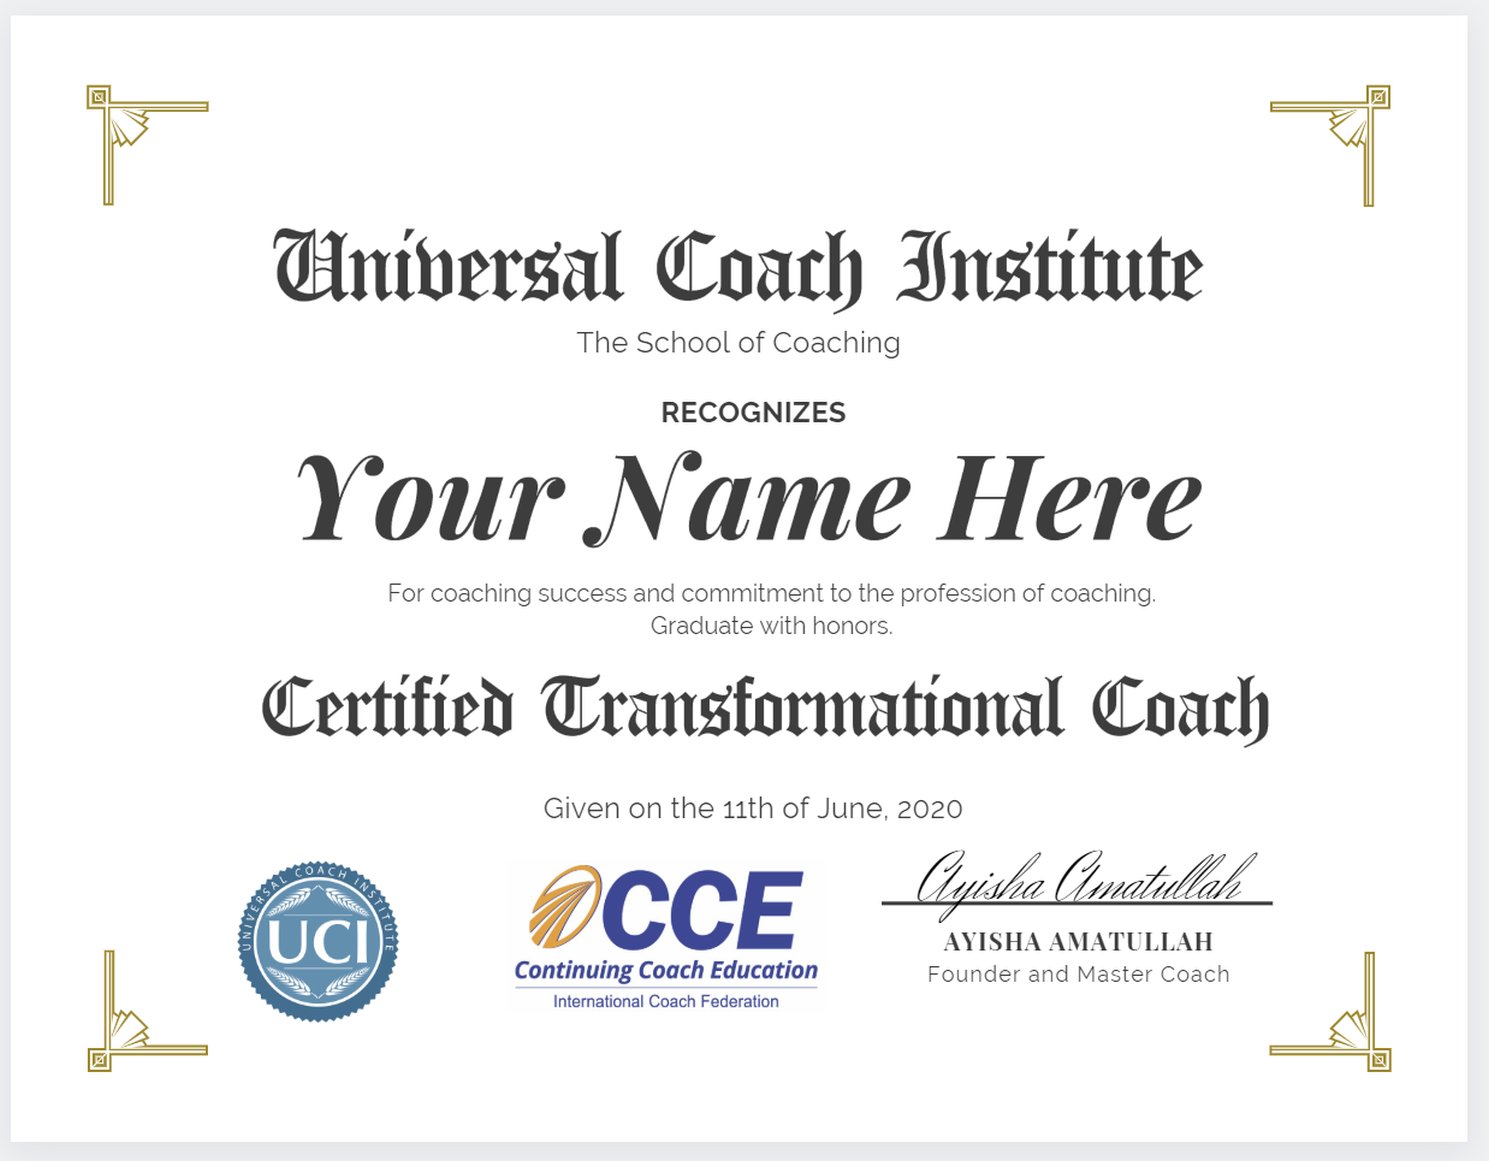 Transformational Coach Certificate - Universal Coach Institute